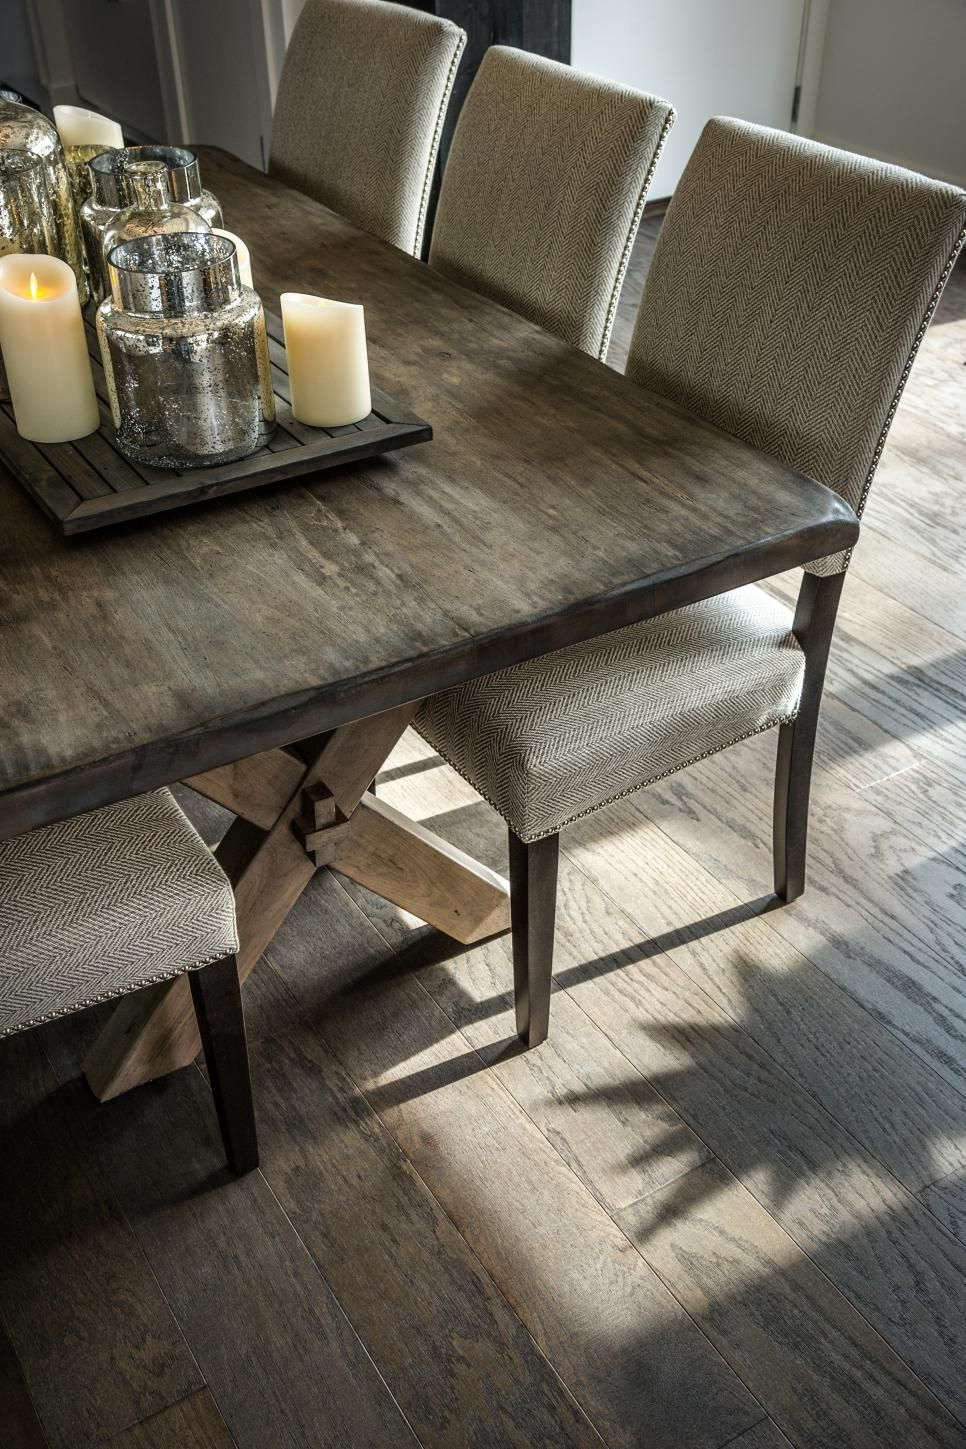 Dining Room Pictures From Hgtv Smart Home 2015  Farmhouse Design Amazing Reclaimed Wood Dining Room Set Review